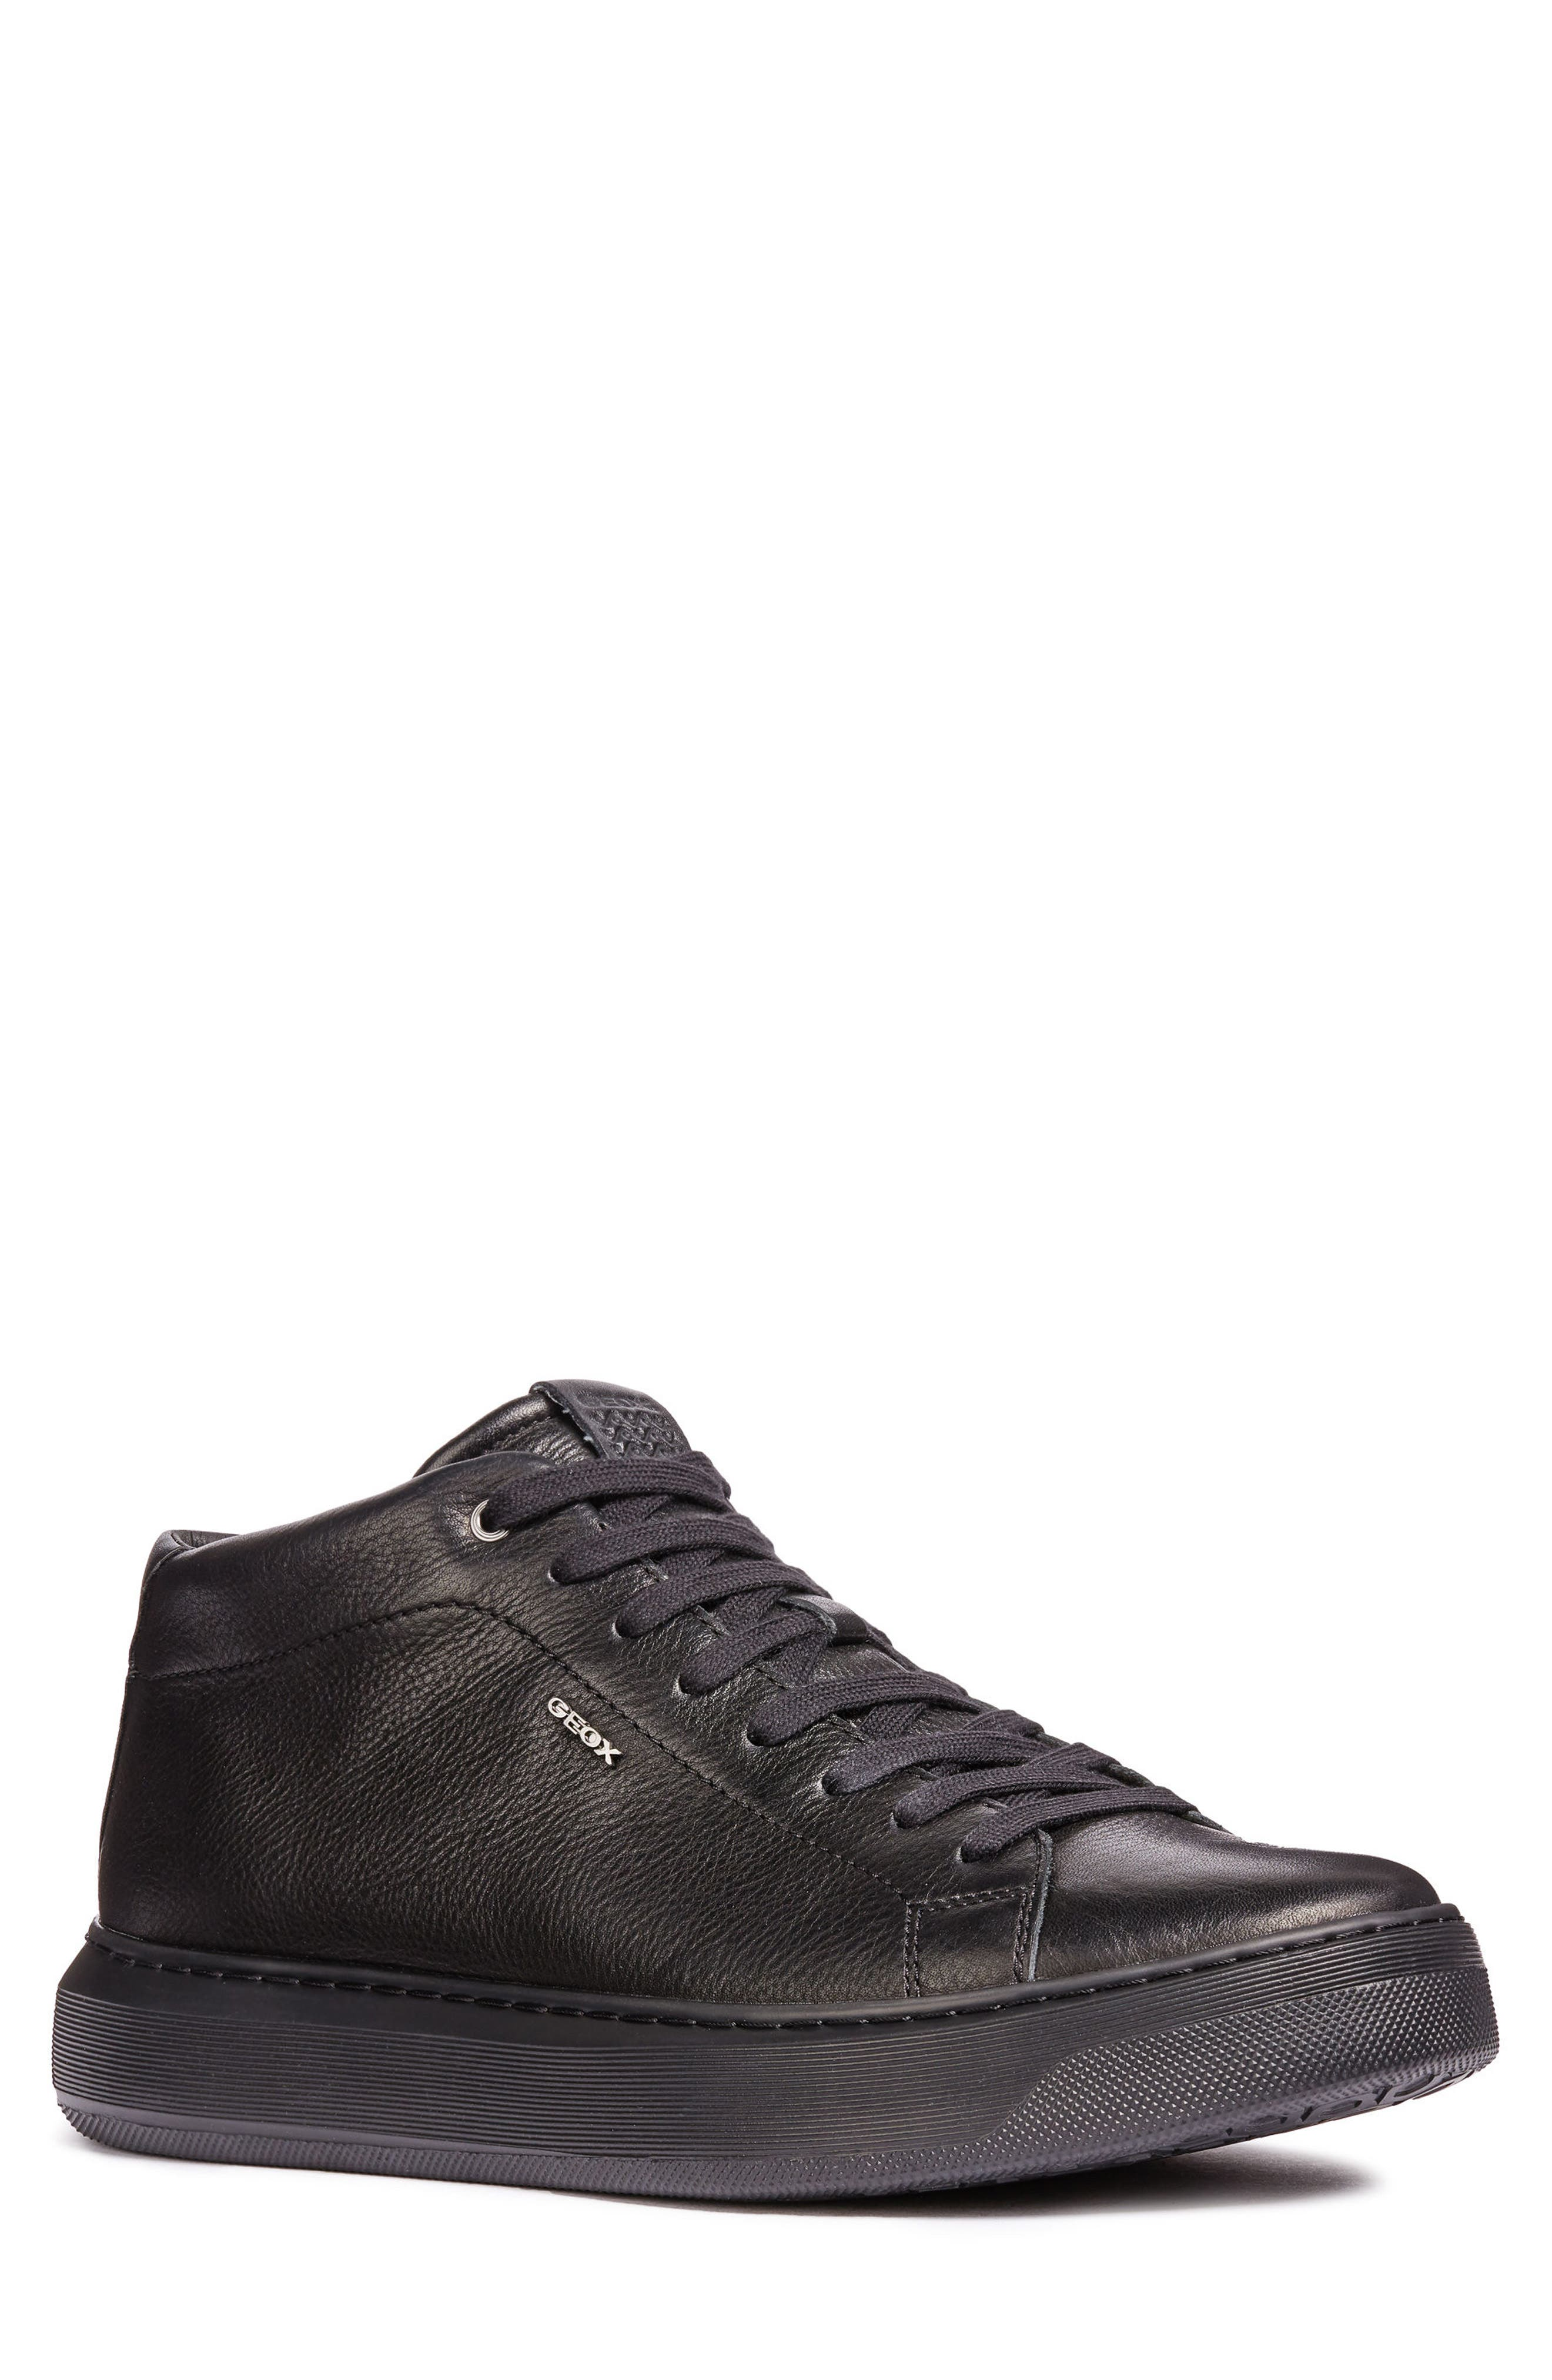 Deiven 1 High Top Sneaker,                             Main thumbnail 1, color,                             BLACK LEATHER